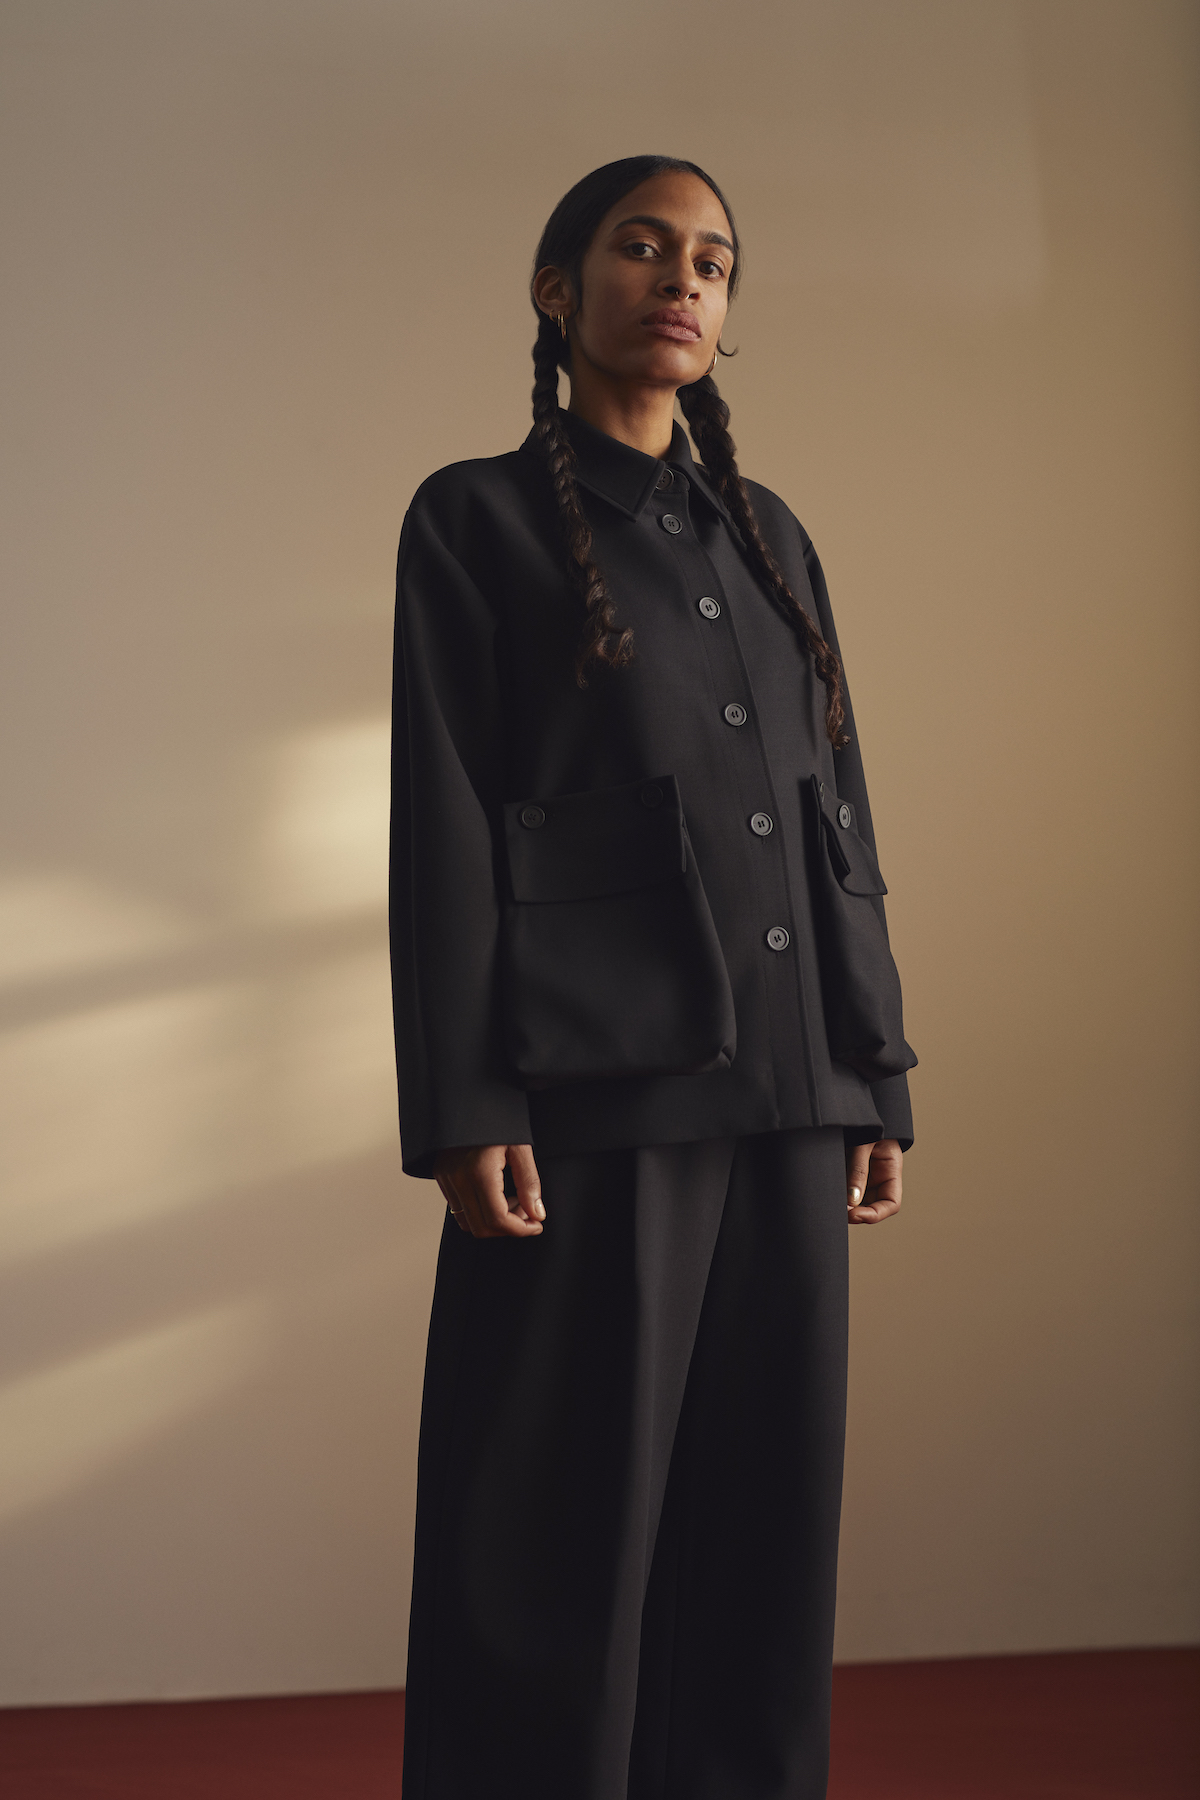 studio nicholson 2018 19 fall winter collection contrary women